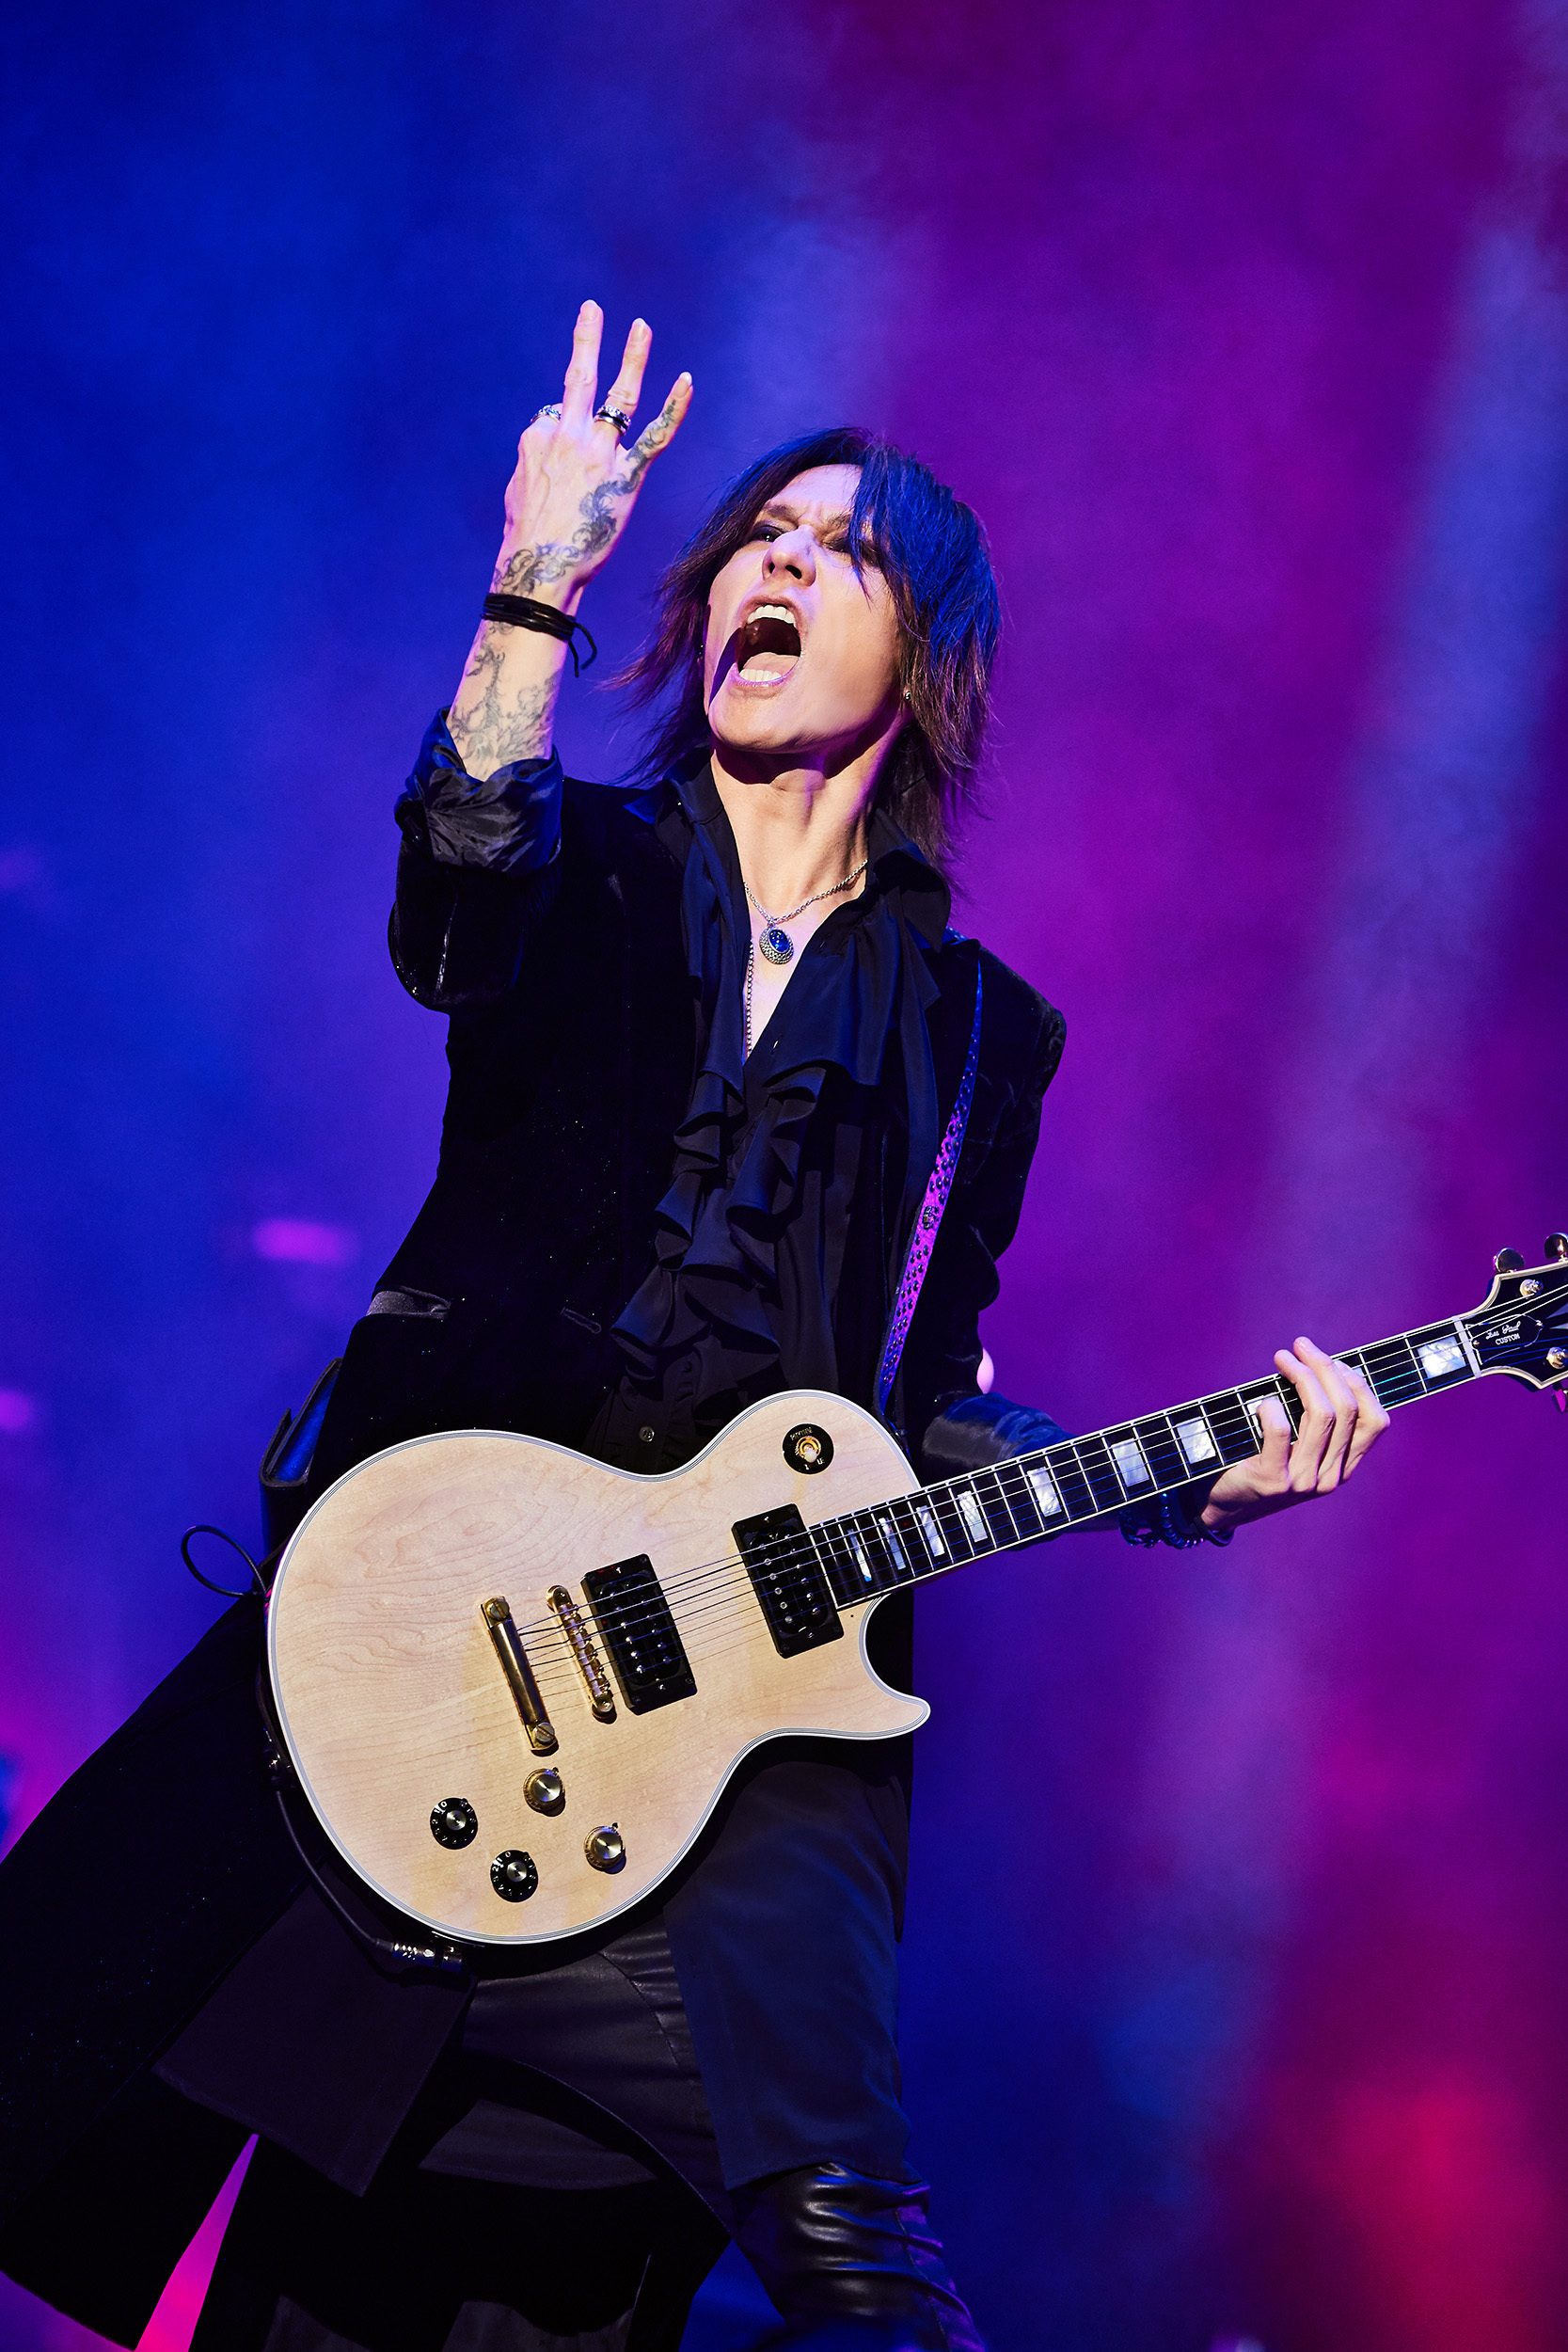 LUNA SEA/SUGIZO